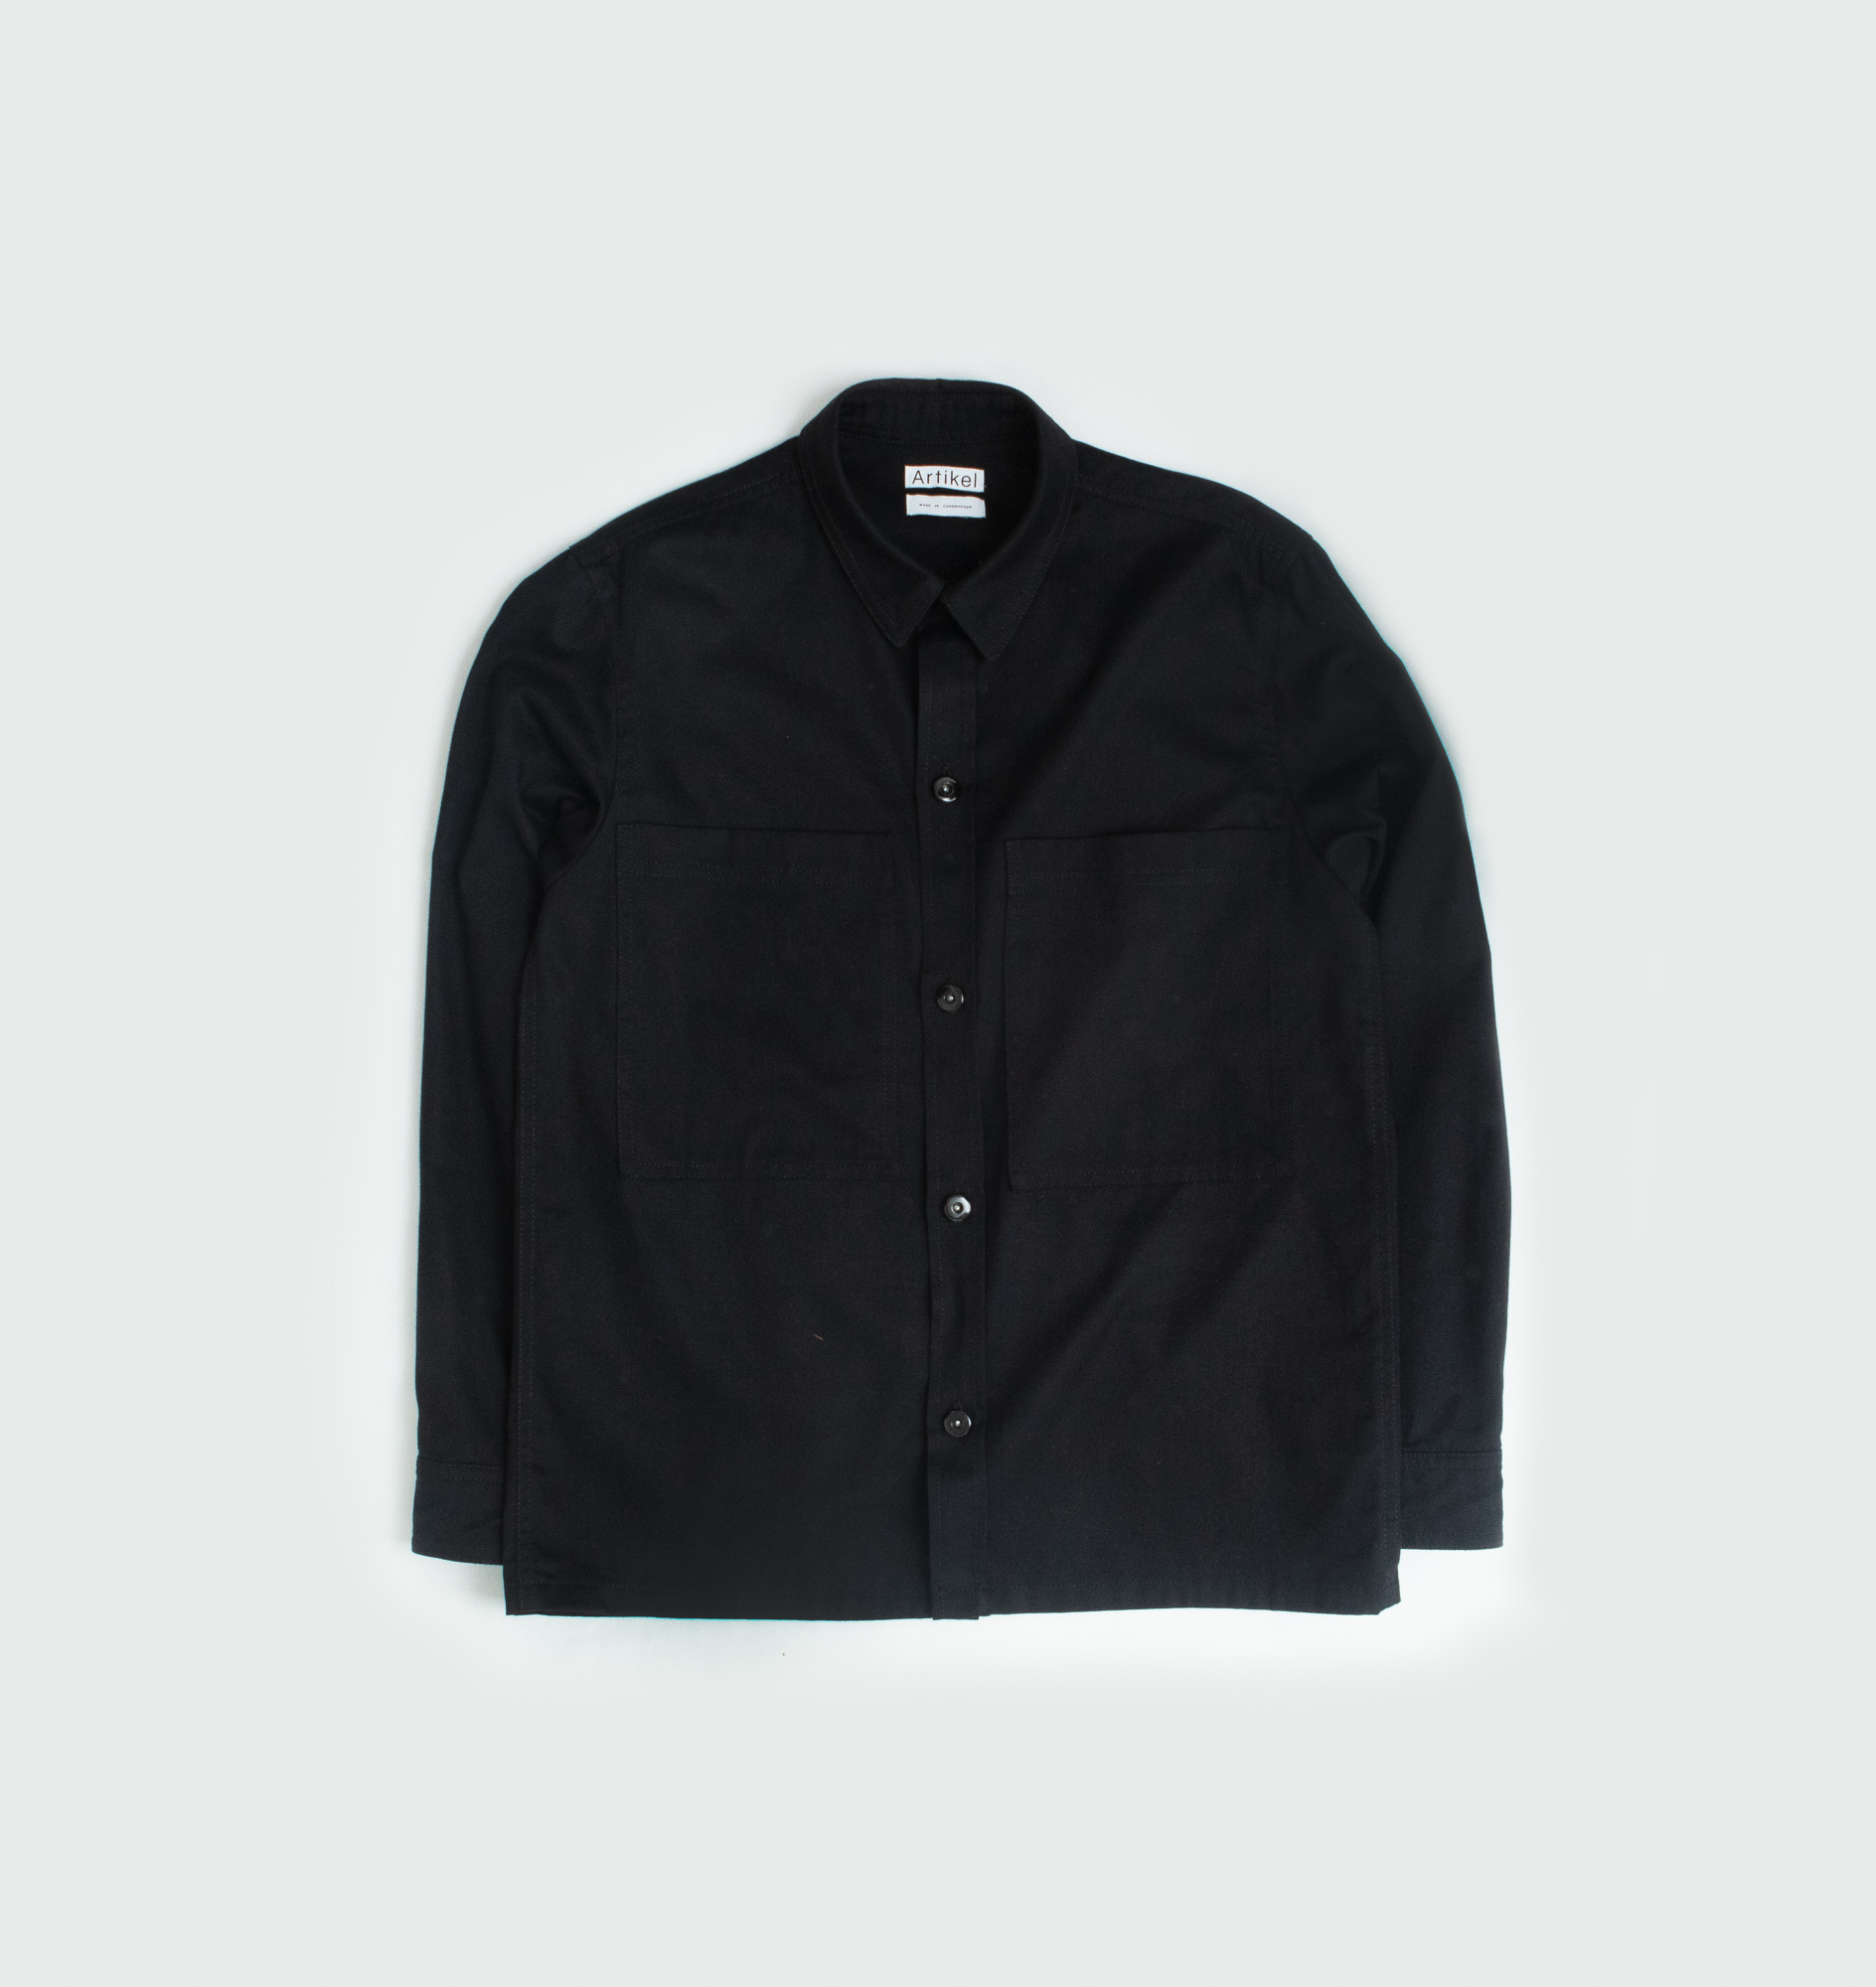 Overshirt or jacket by Artikel Store, Made In Copenhagen, Denmark